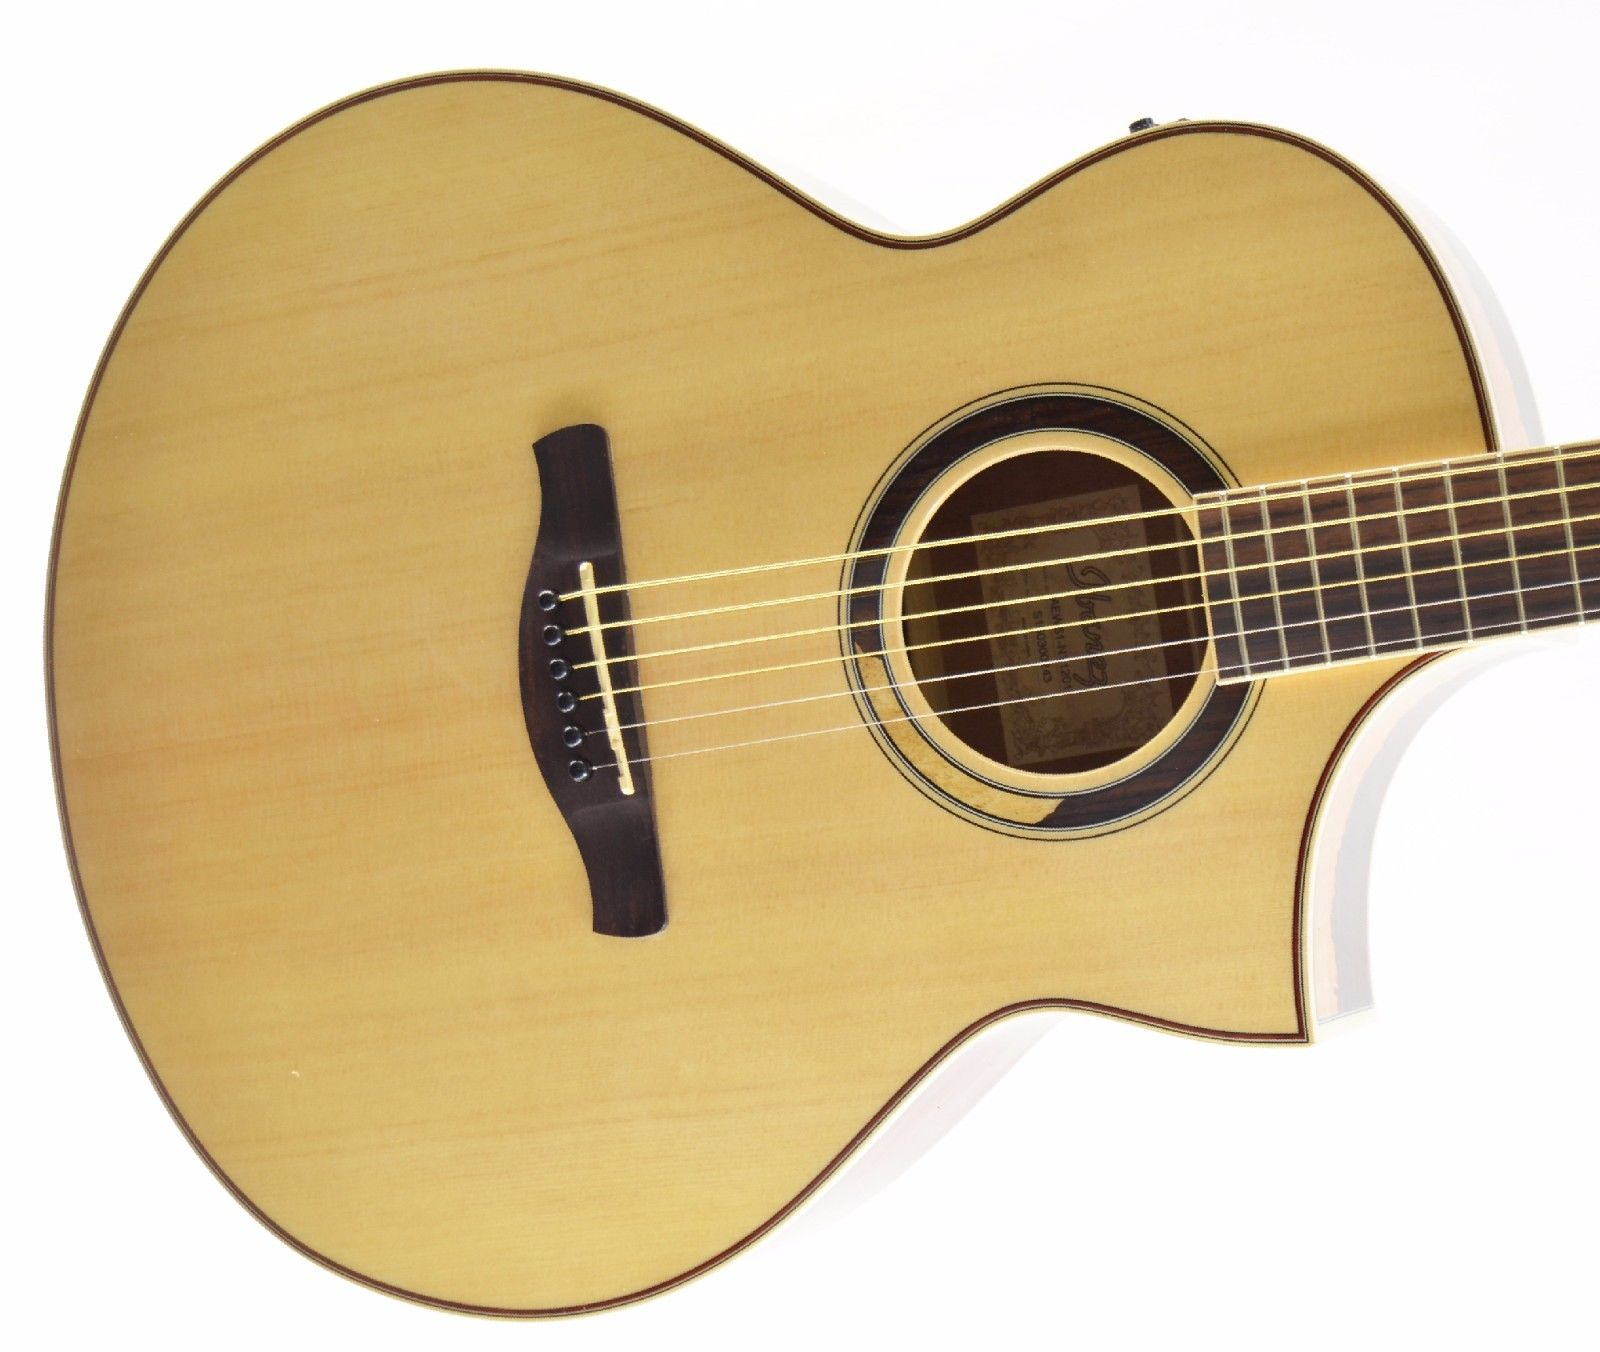 *NEW* Ibanez AEW51 Exotic Tonewood Acoustic Electric Guitar – Natural (A)